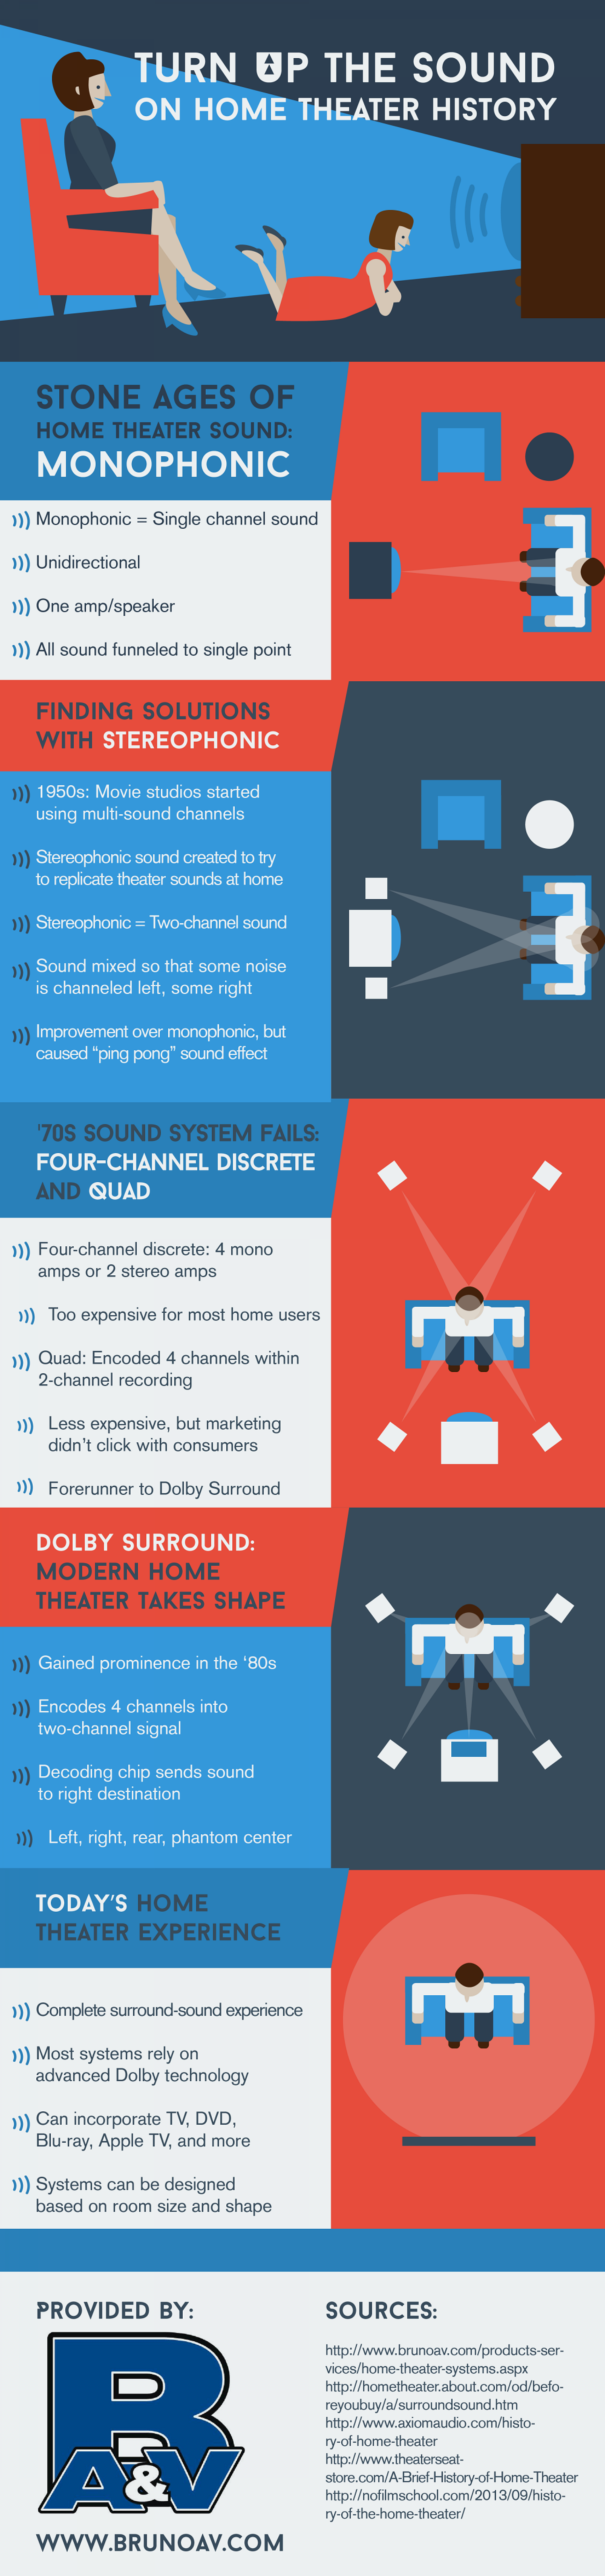 Turn Up the Sound on Home Theater History Infographic